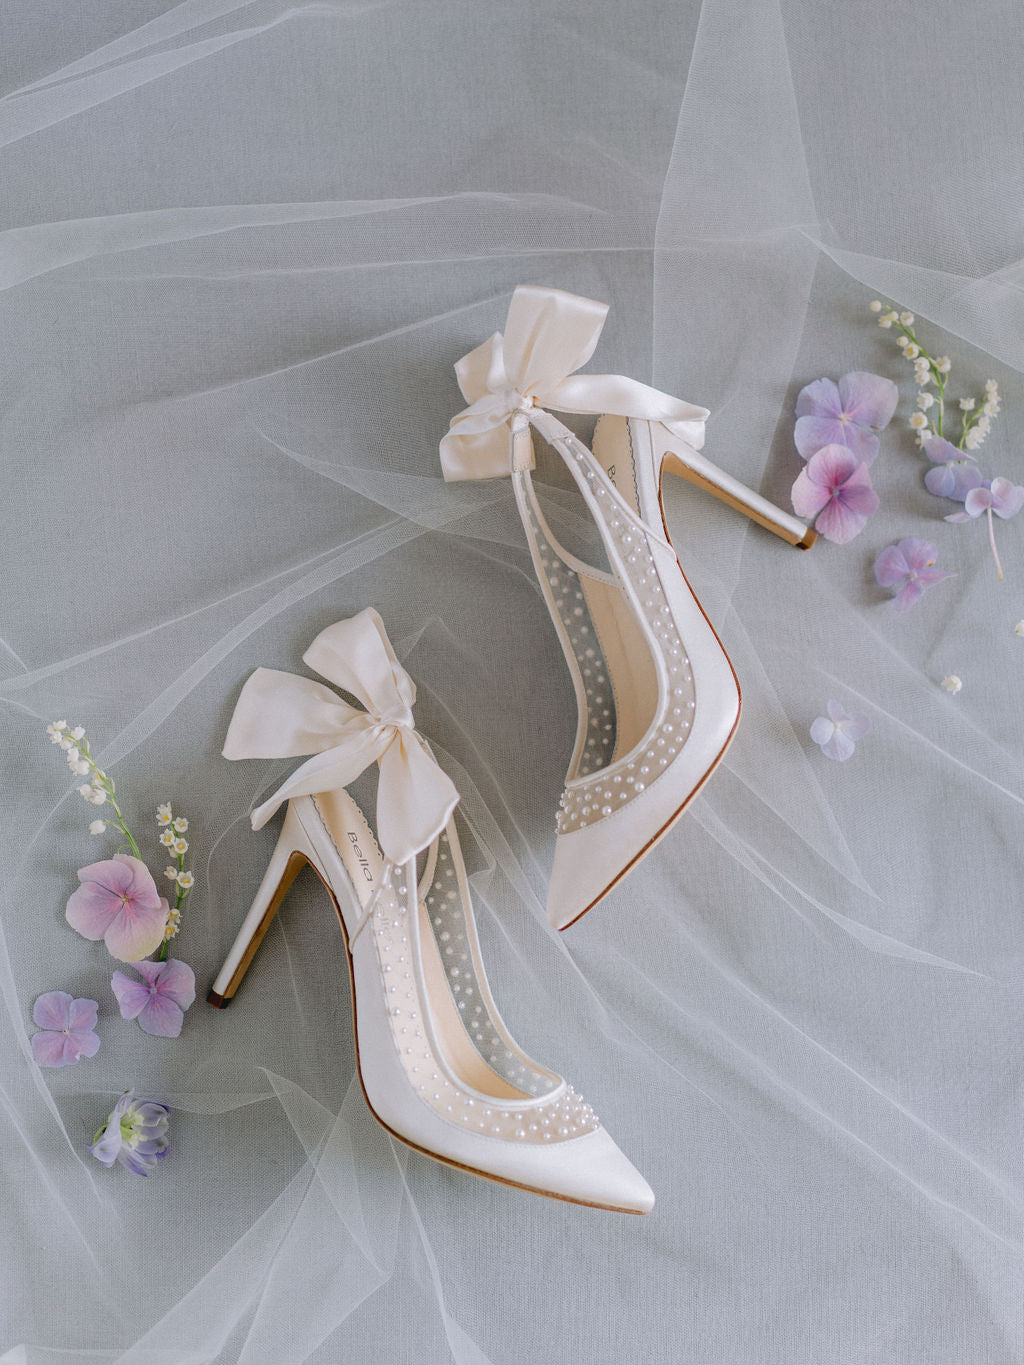 bella belle bridal trend pearl wedding shoes 2020